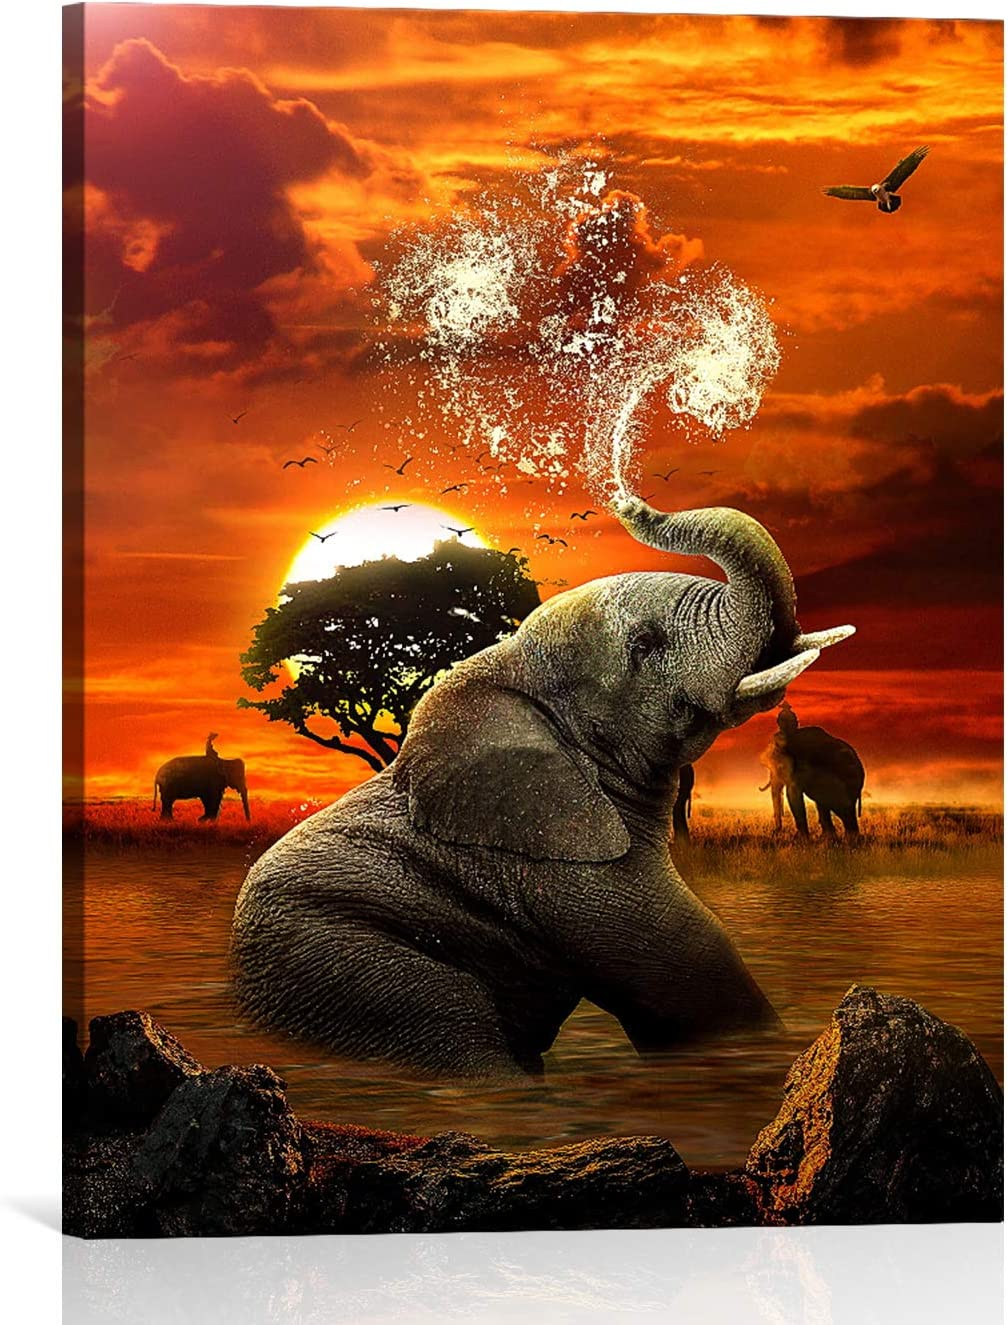 Elephant Canvas Wall Art for Bathroom, African Elephant Modern Canvas Wall Art,Elephant Playing with Water Animals Sunset Landscape Print on Canvas Art Wall Decor for Bedroom Ready to Hang 8x12 inch